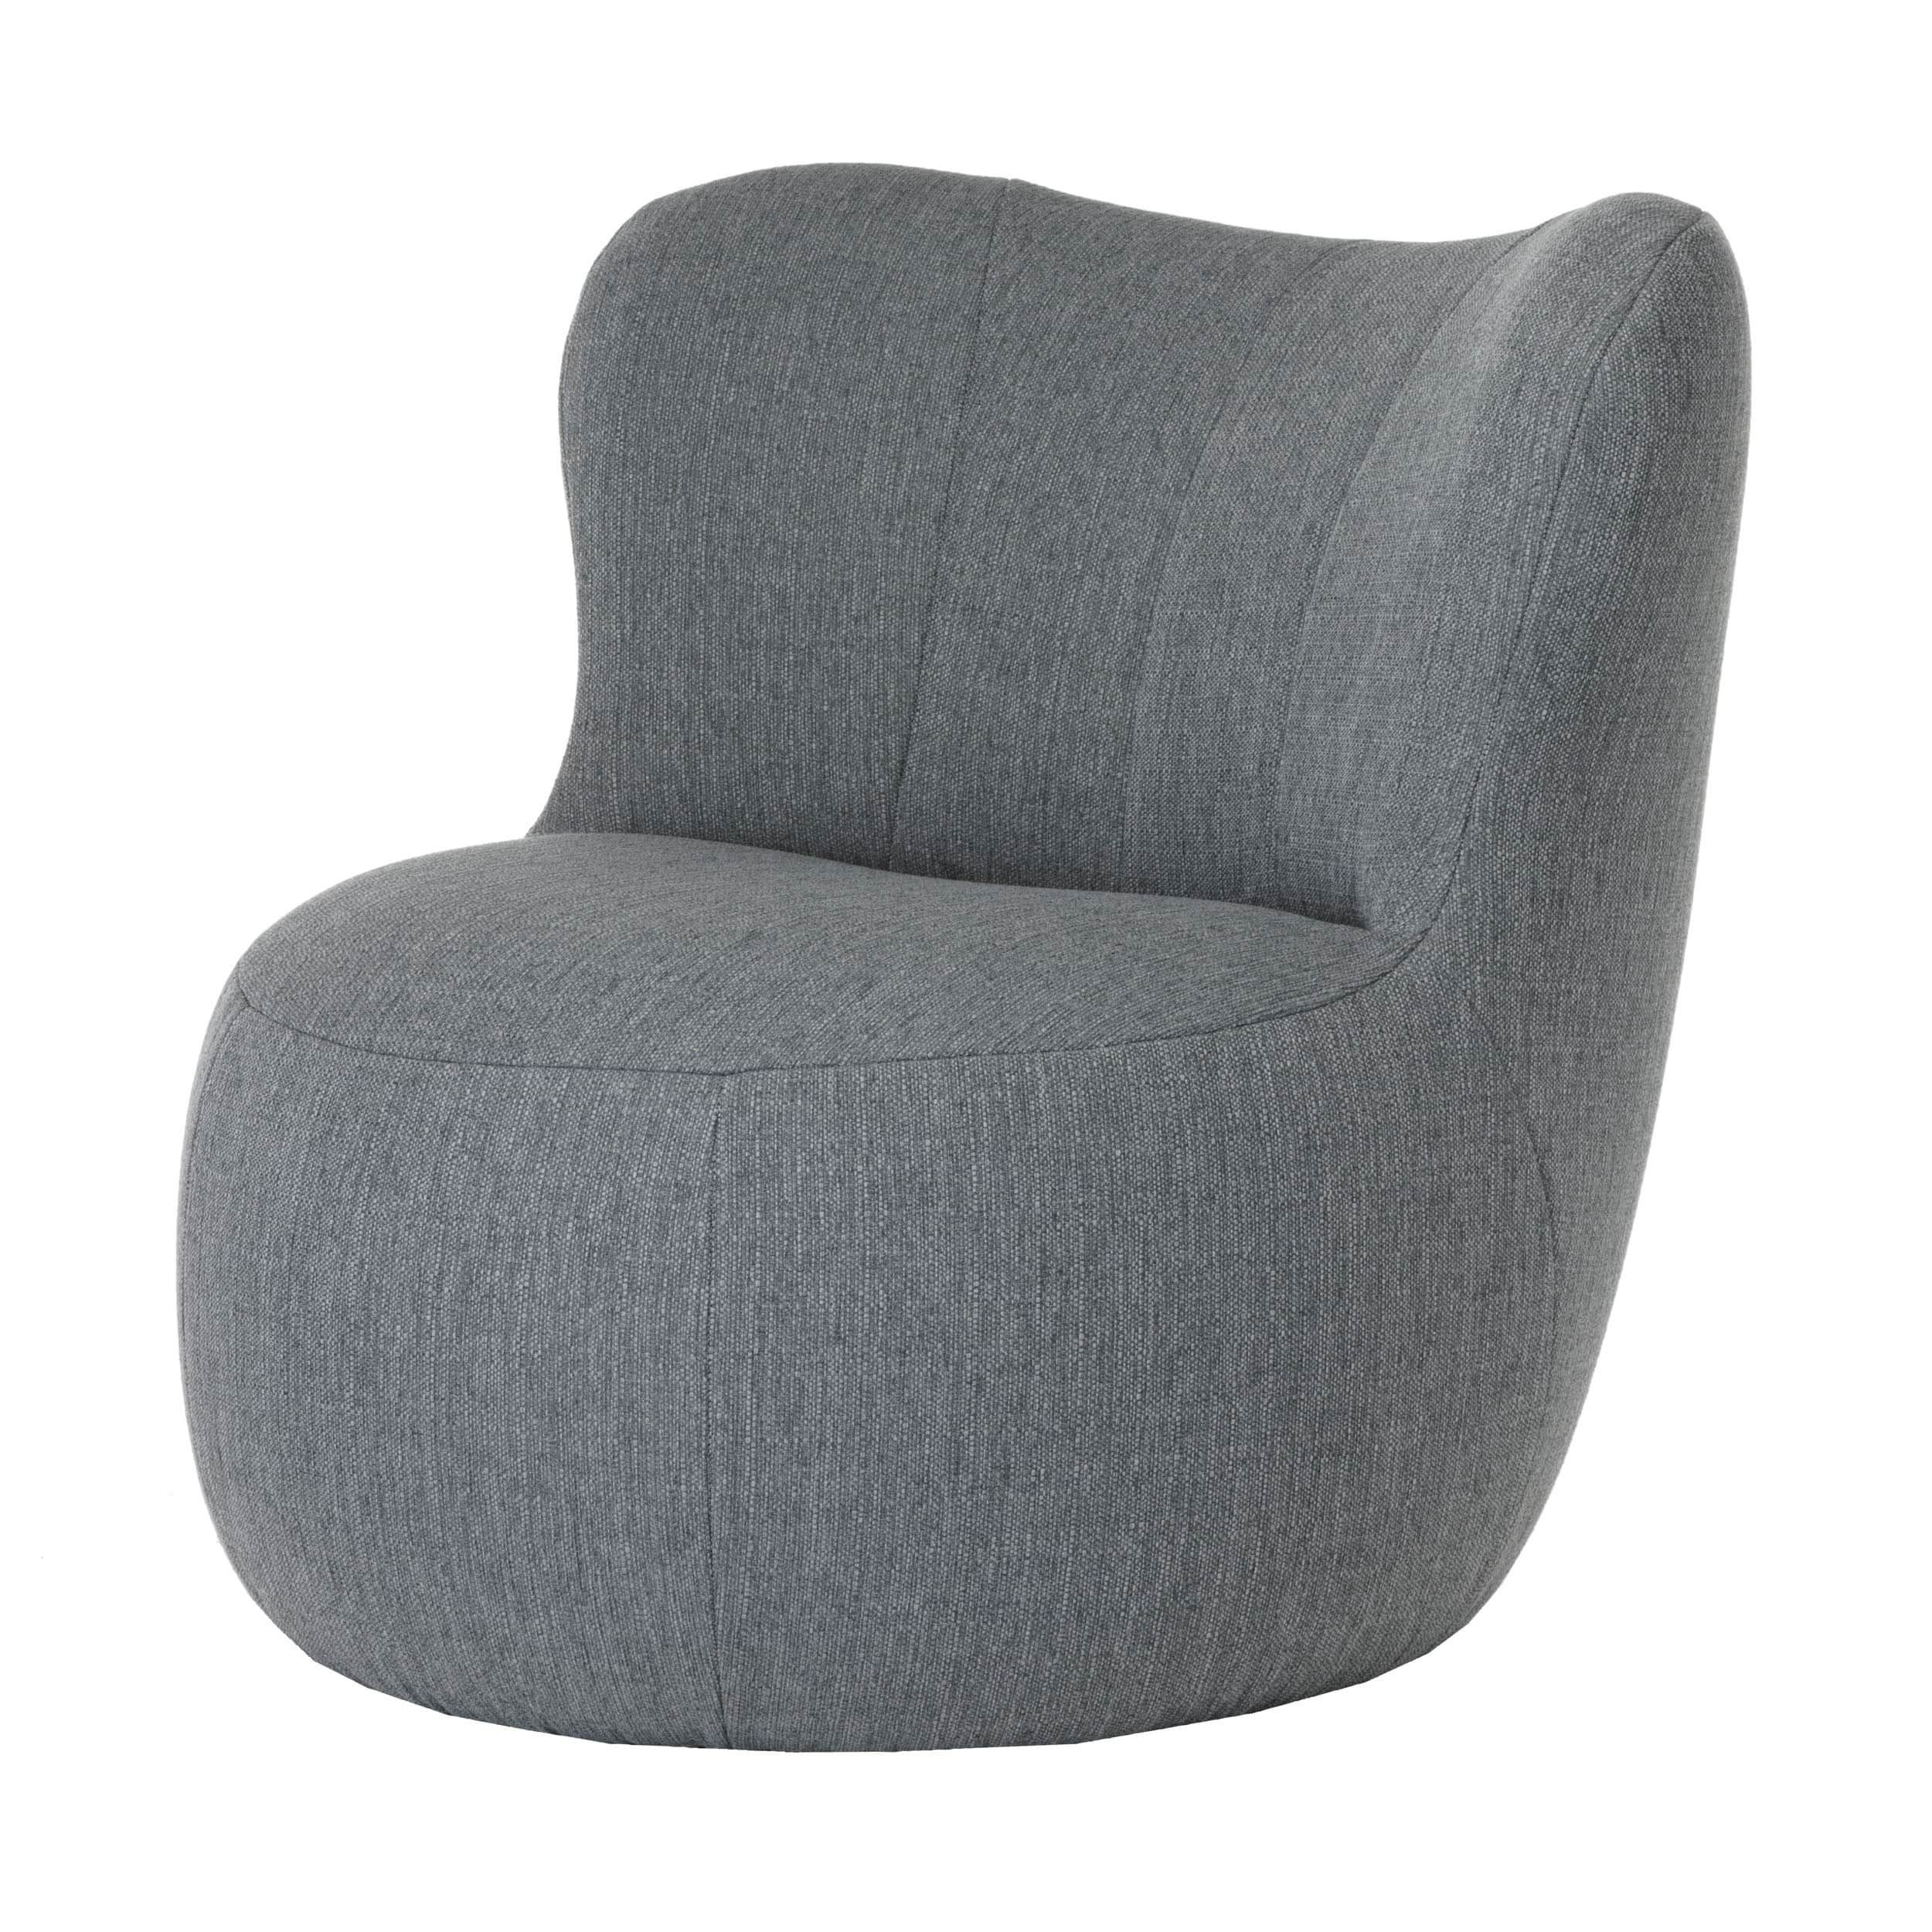 Freistil 173 Sessel Freistil 173 Sessel A043717 006 J 家具 Chair Accent